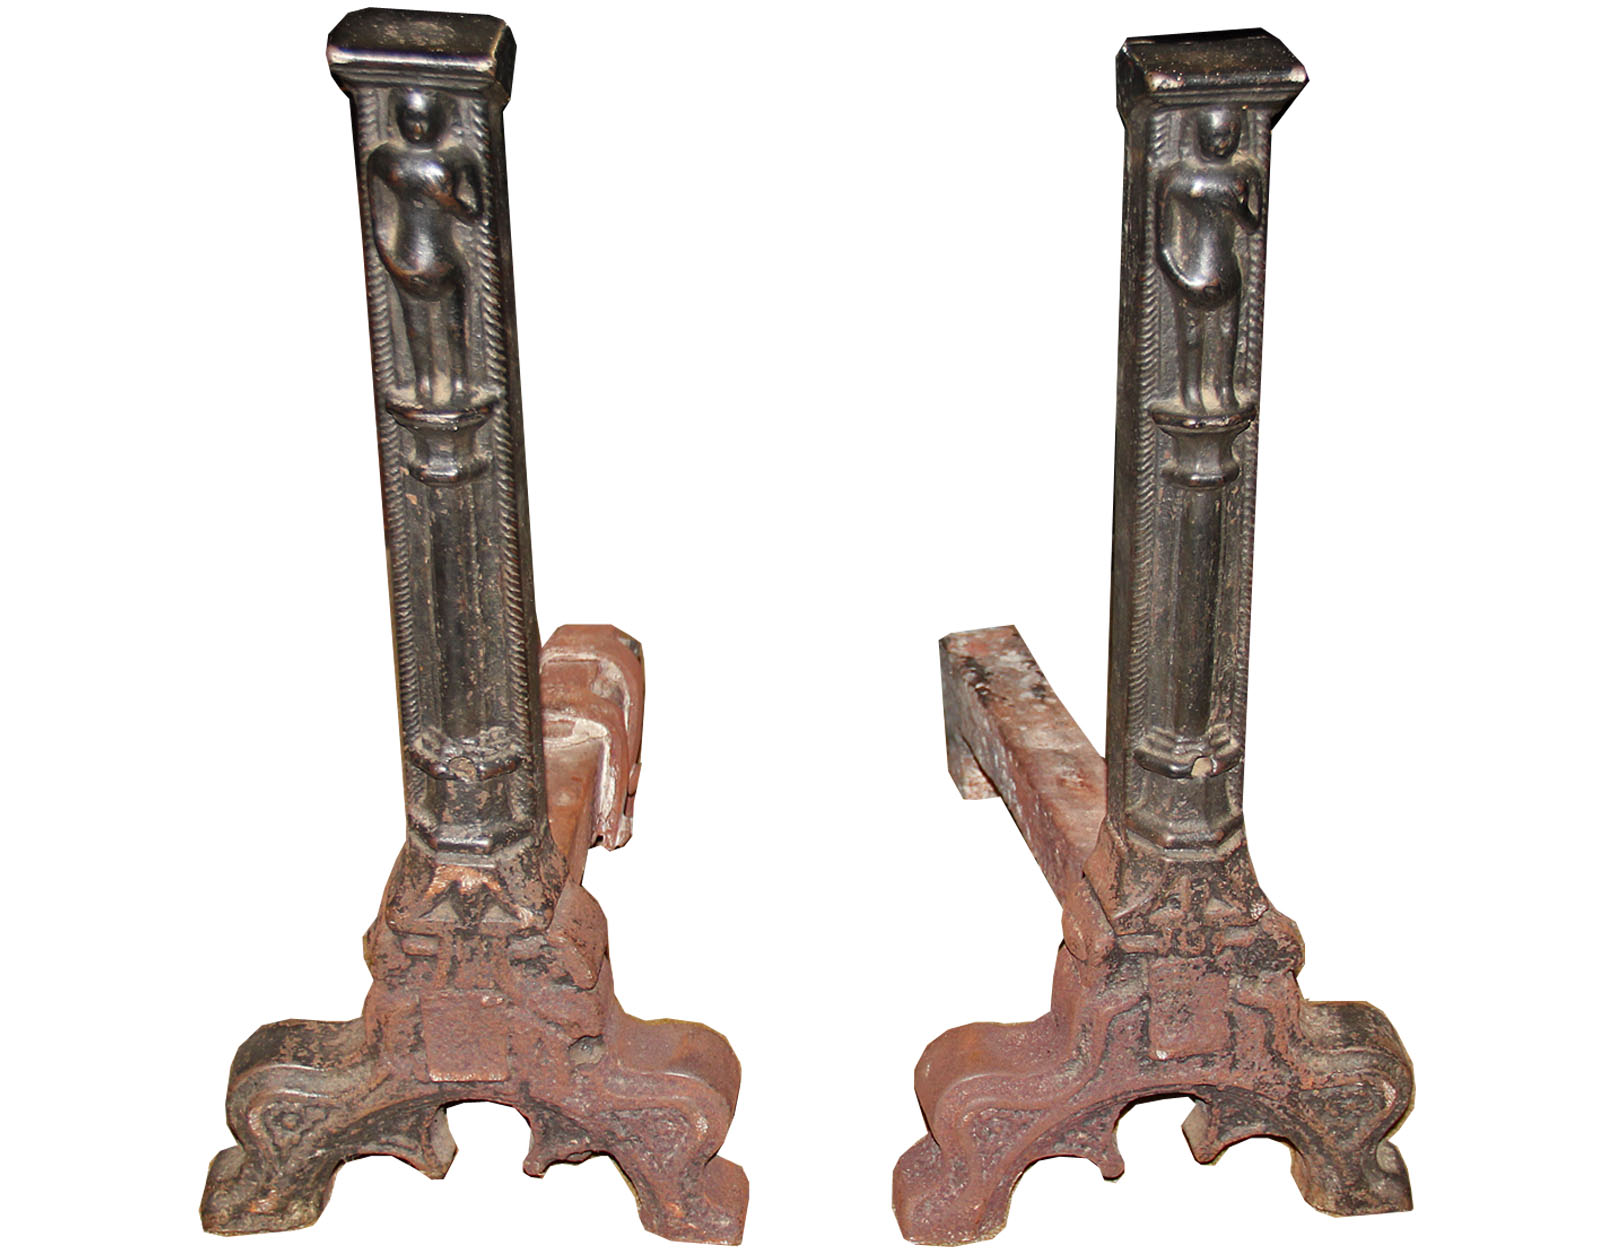 A Pair of 17th Century Flemish Gothic Wrought Iron Andirons No. 4527